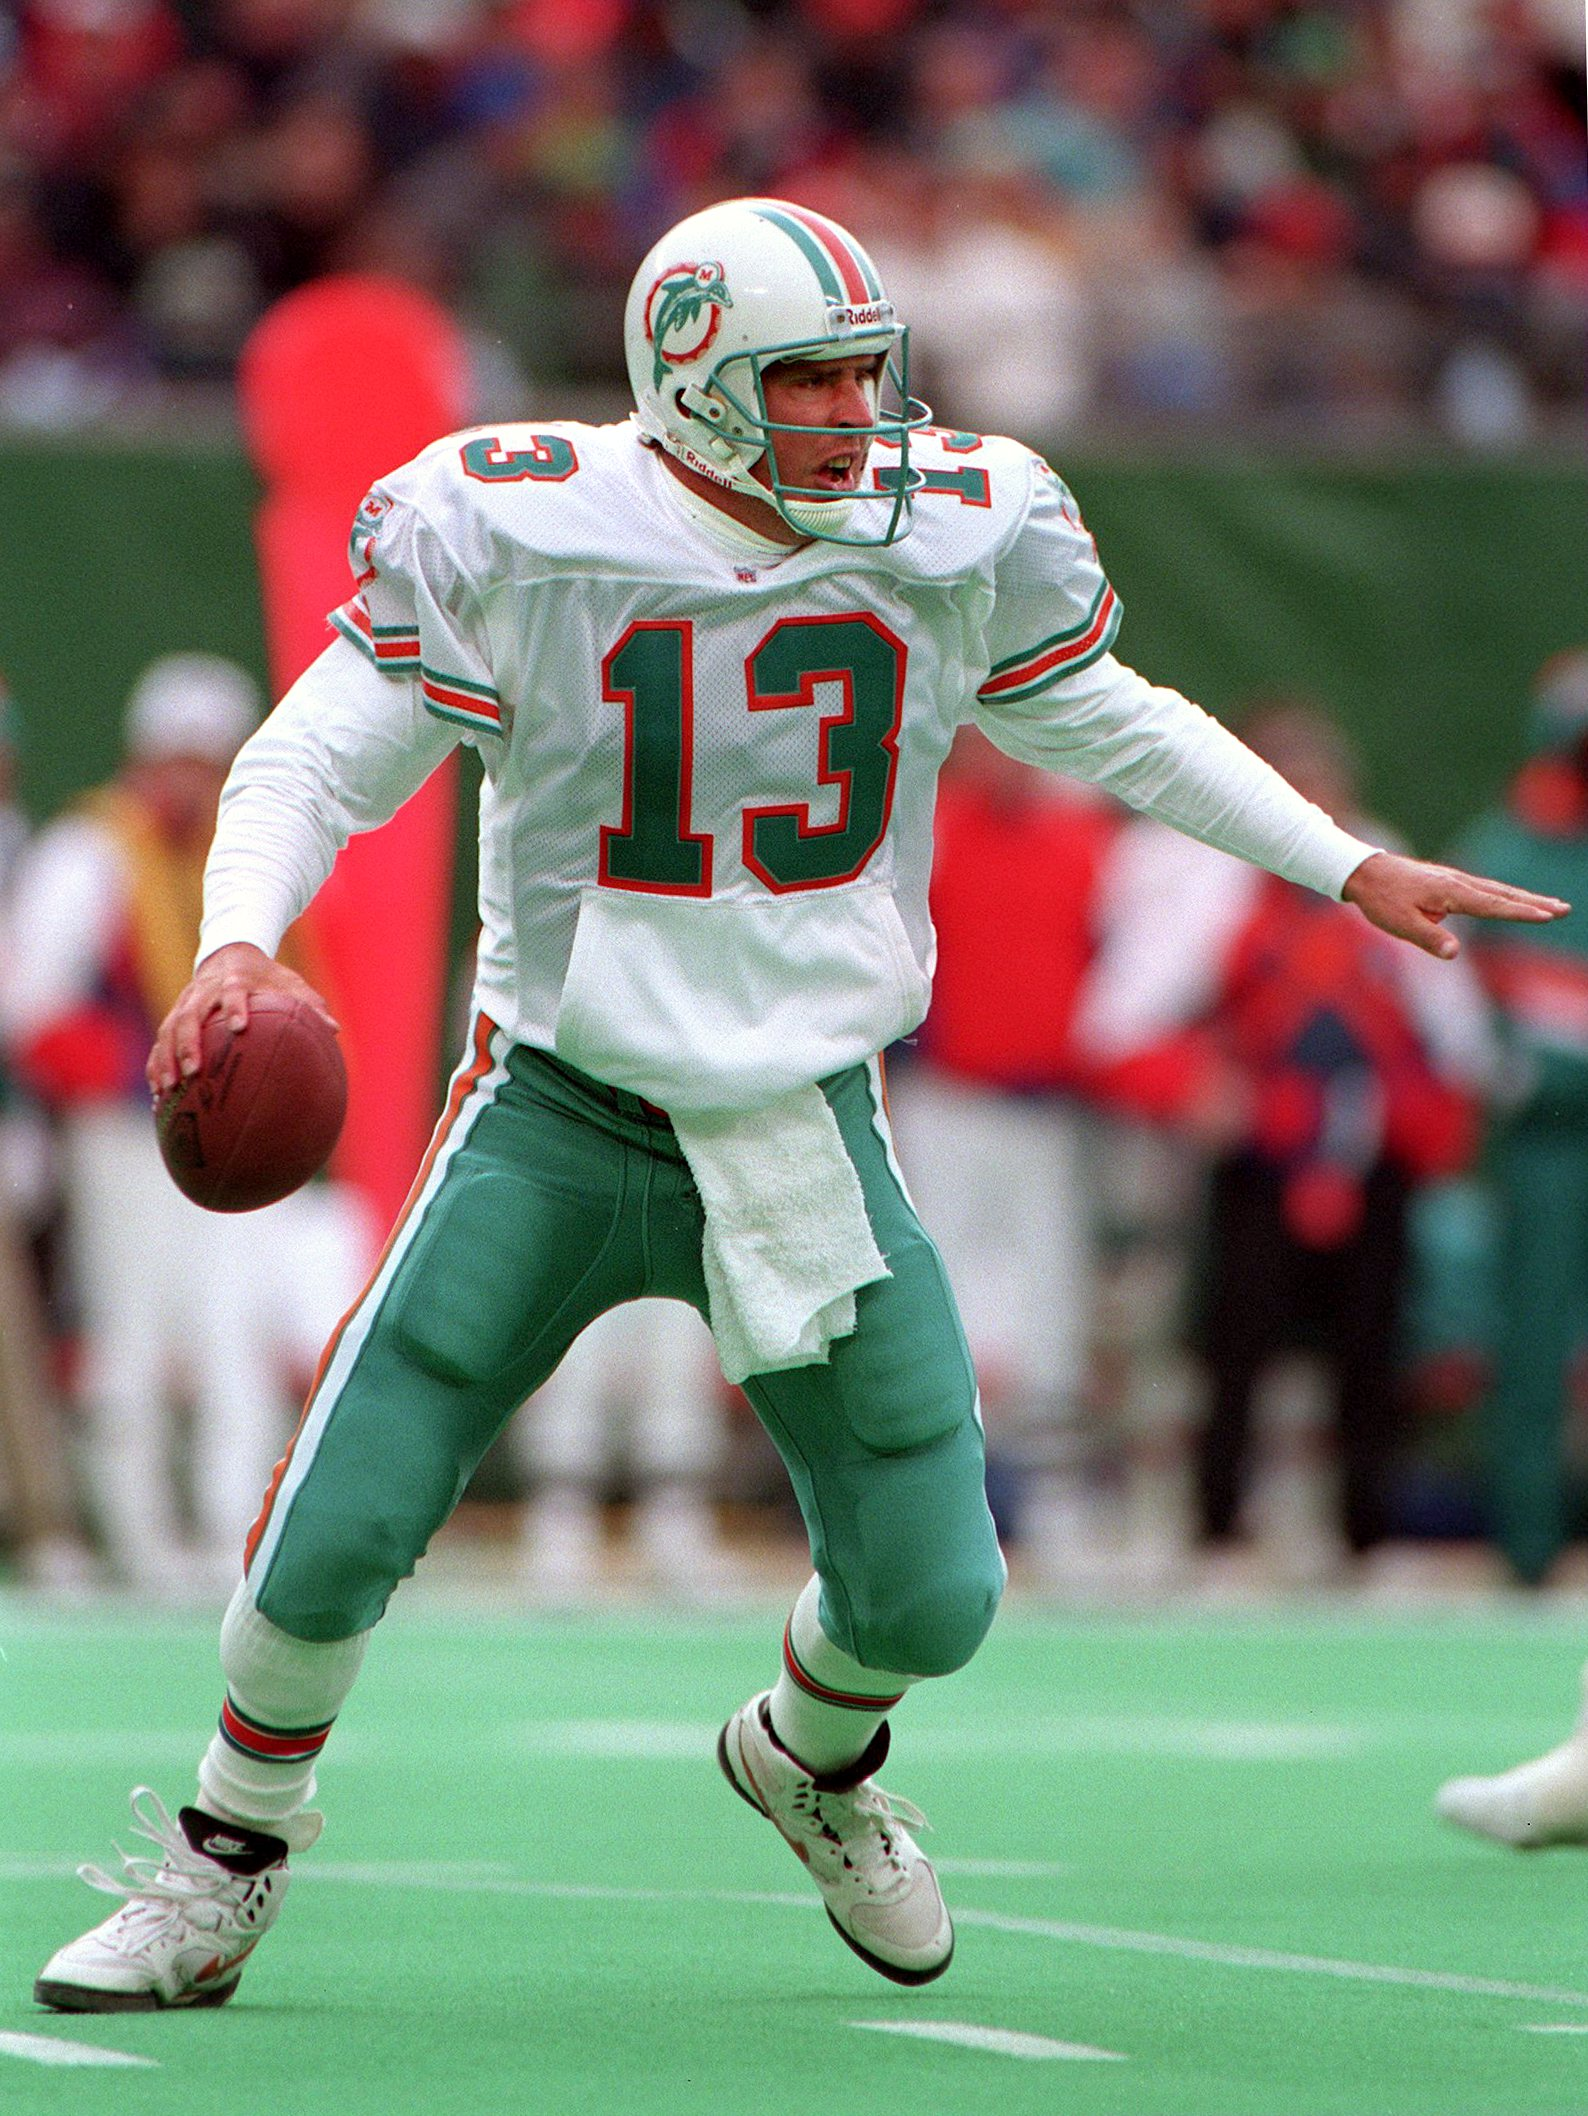 27 Nov 1994: MIAMI DOLPHINS QUARTERBACK DAN MARINO IN ACTION DURING THE FIRST HALF OF THE JETS V MIAMI GAME AT GIANTS STADIUM IN THE MEADOWLANDS, NJ. MARINO FINISHED THE DAY, 31 OF 44 FOR 359 YARDS AND FOUR TOUCHDOWNS TO WIDE RECEIVER MARK INGRAM, AS THE